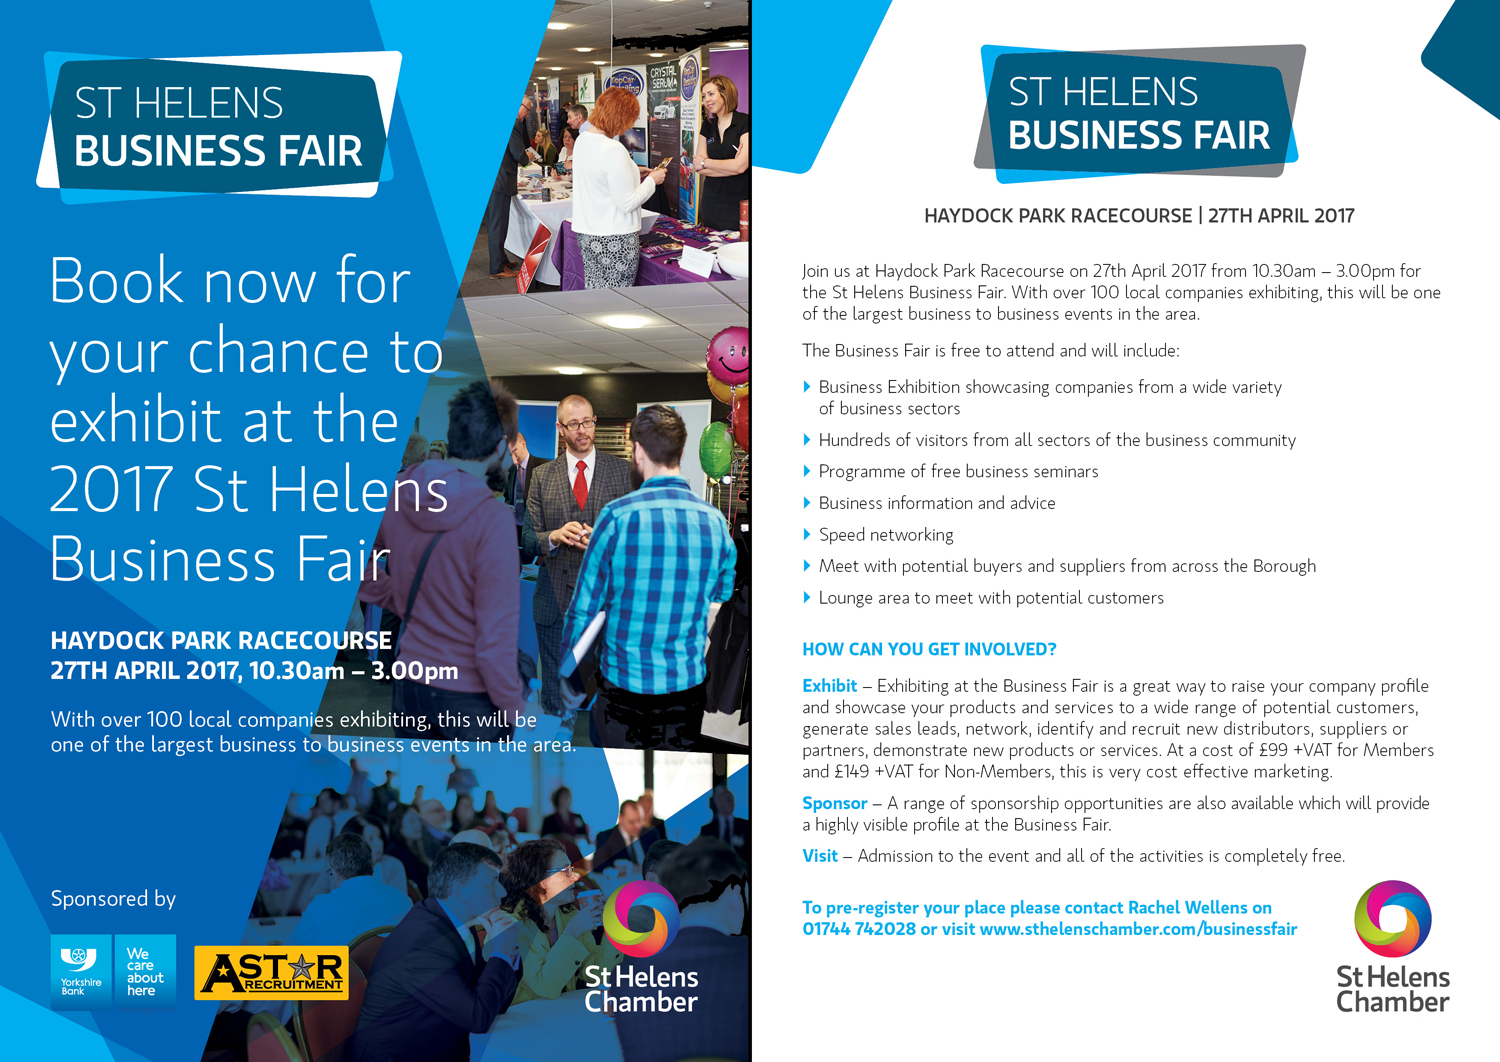 St Helens Business Fair